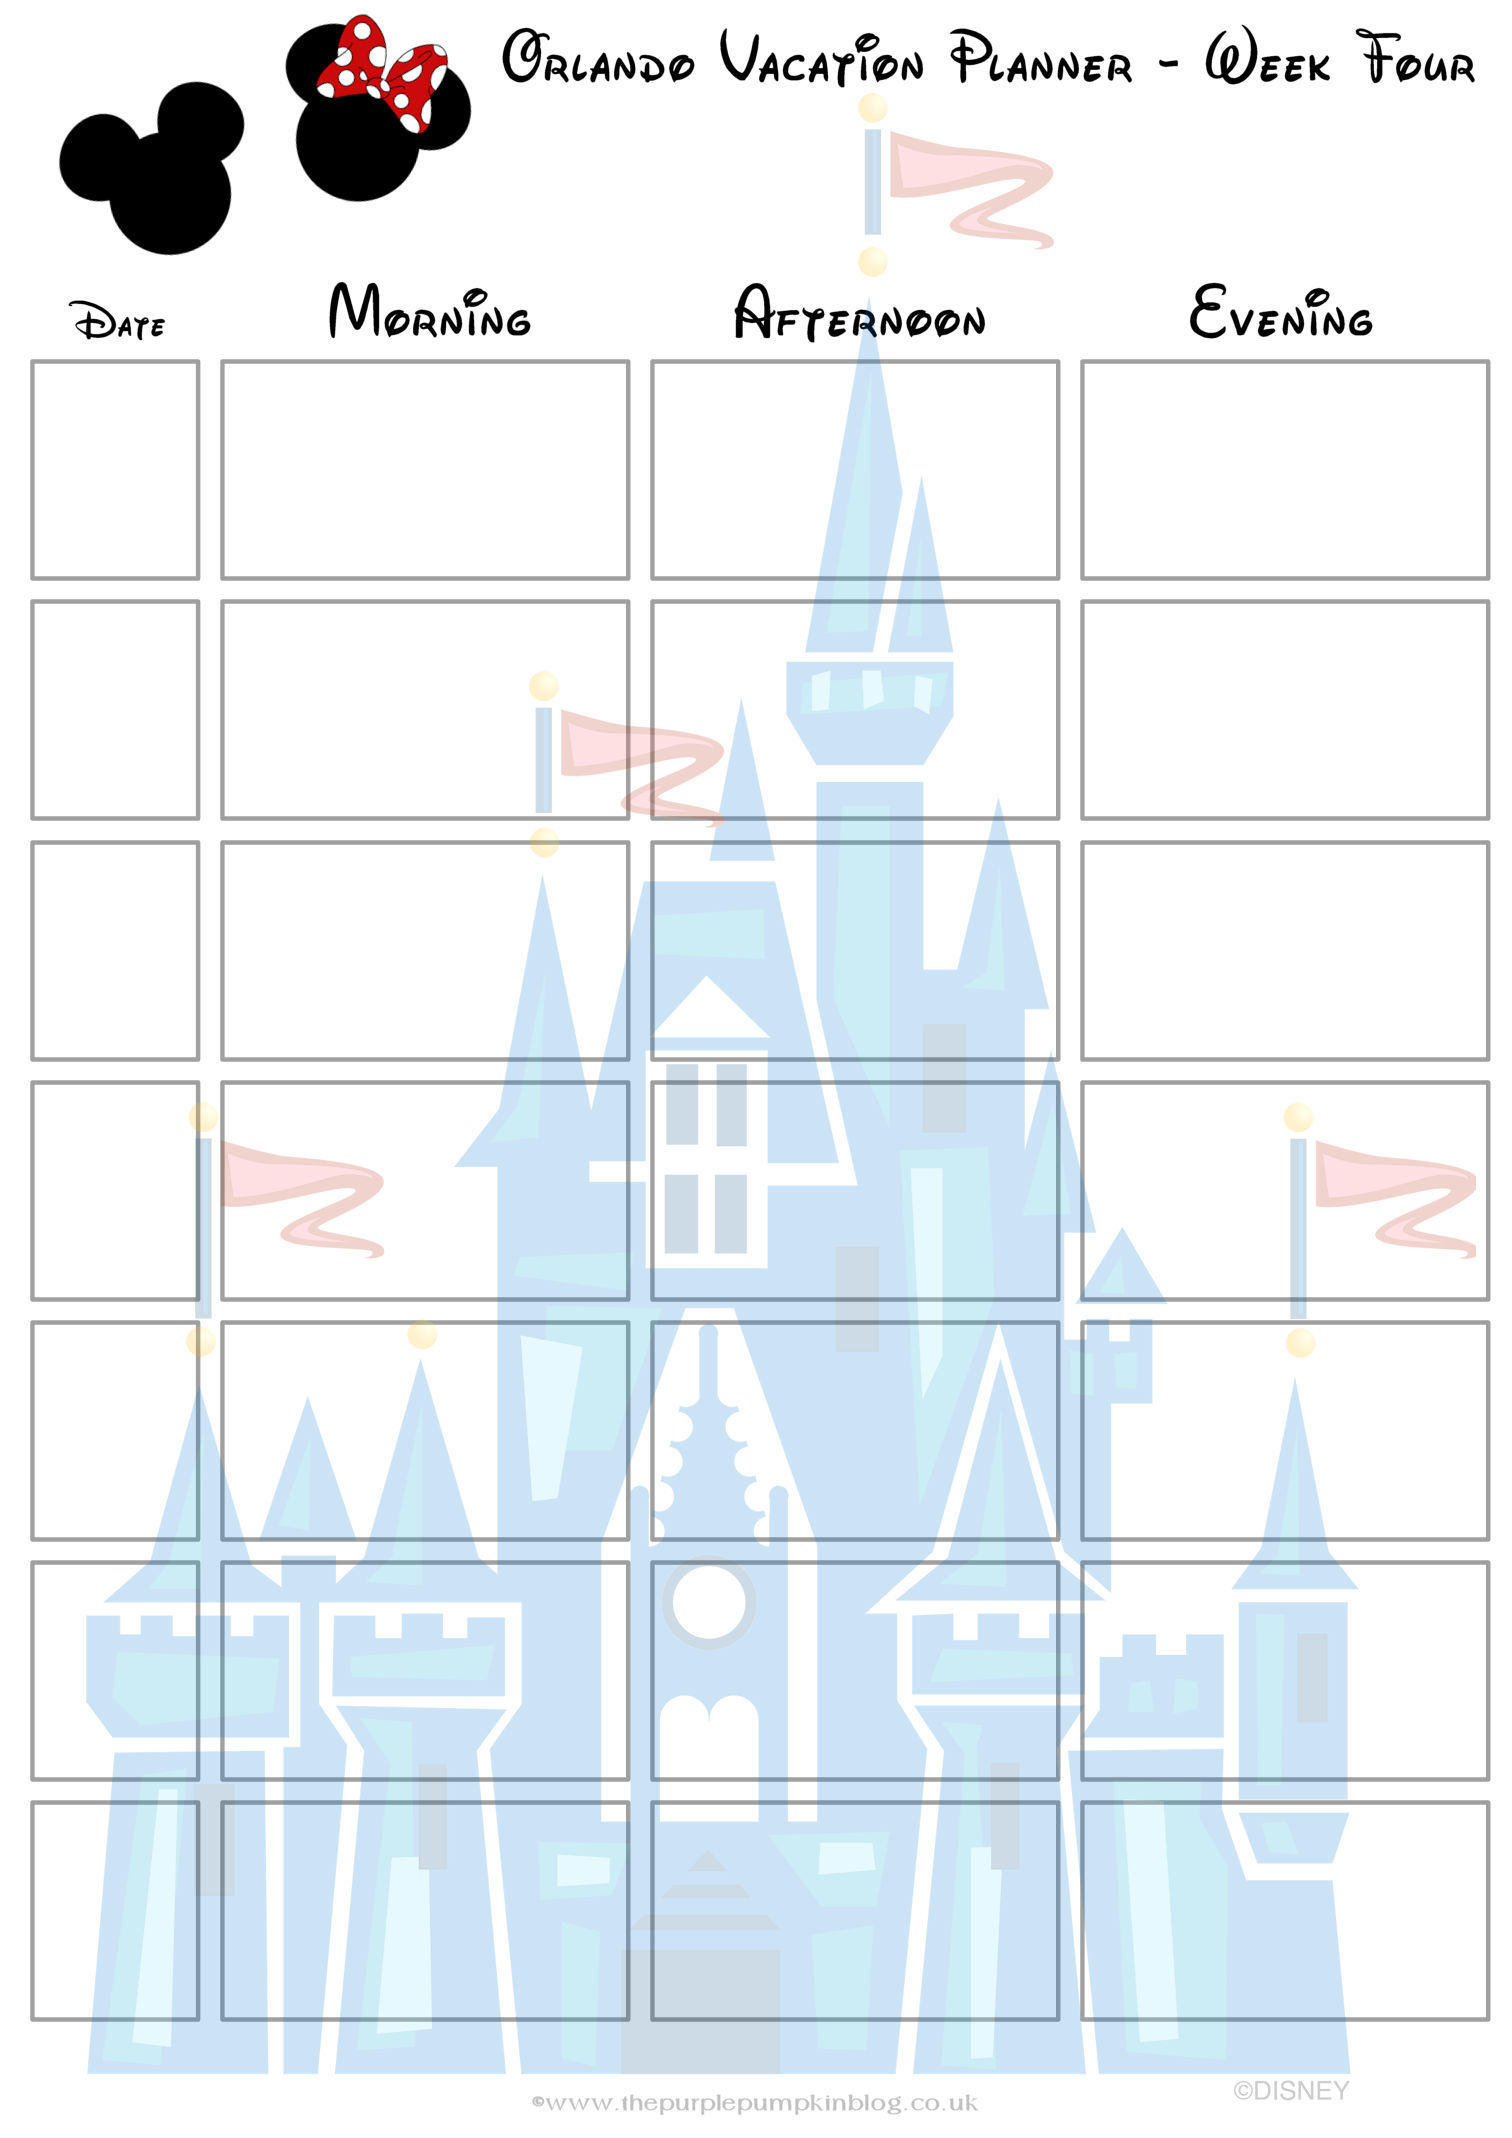 Orlando walt disney world vacation planner free printable for Trip calendar planner template